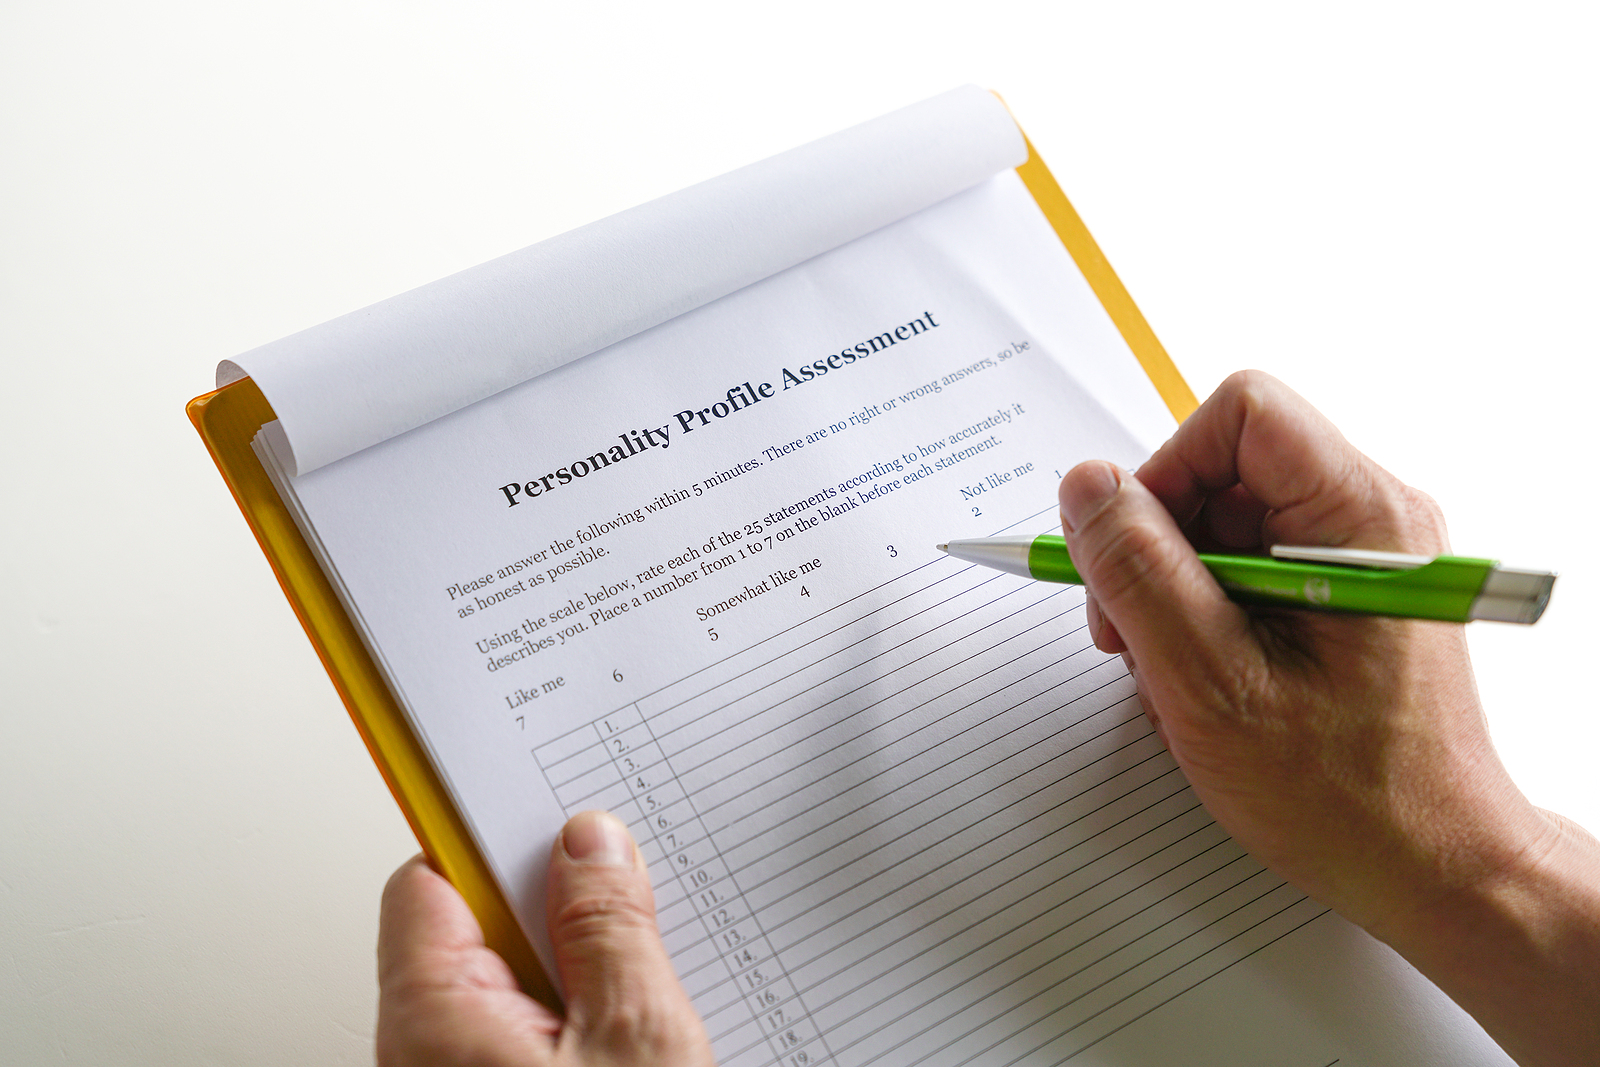 Personality test or assessment form as part of career or parent personality assessment process. You can get personality testing in tampa, fl at Sheltering Oaks. Counseling and various personality testing near Tampa, FL is available here and with online therapy in Florida.